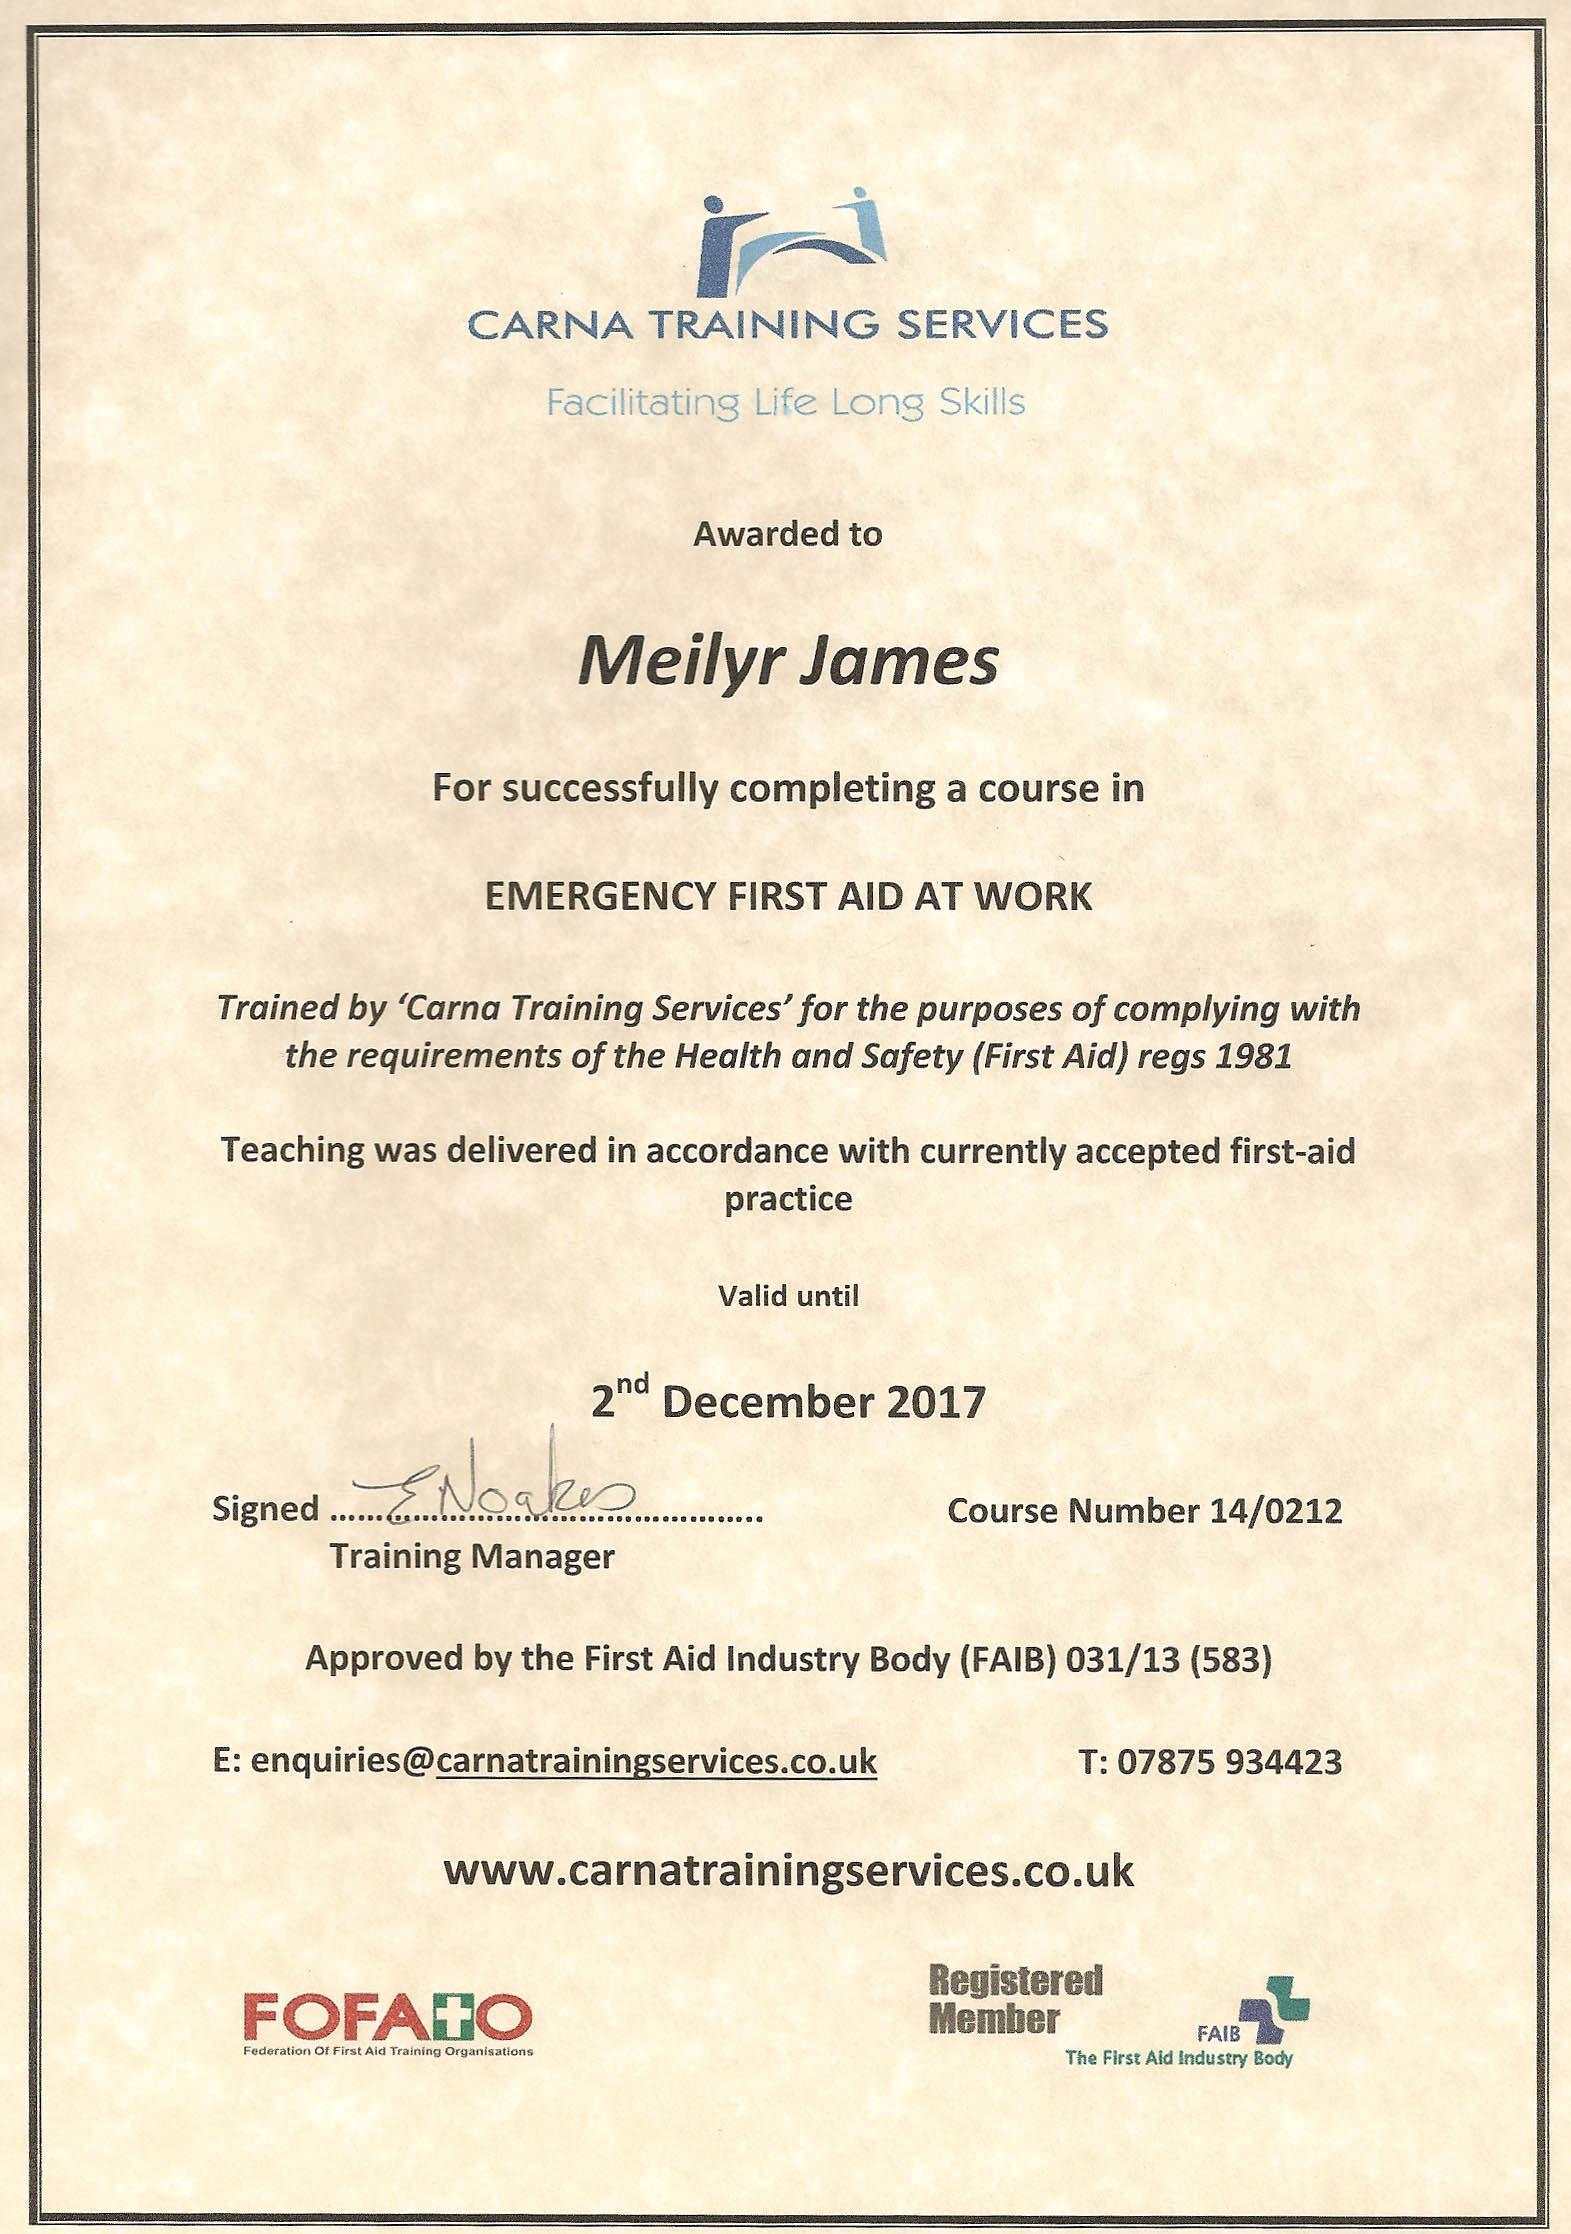 First Aid Certificate Mj 2014 7 Herbal Clinic Swansea